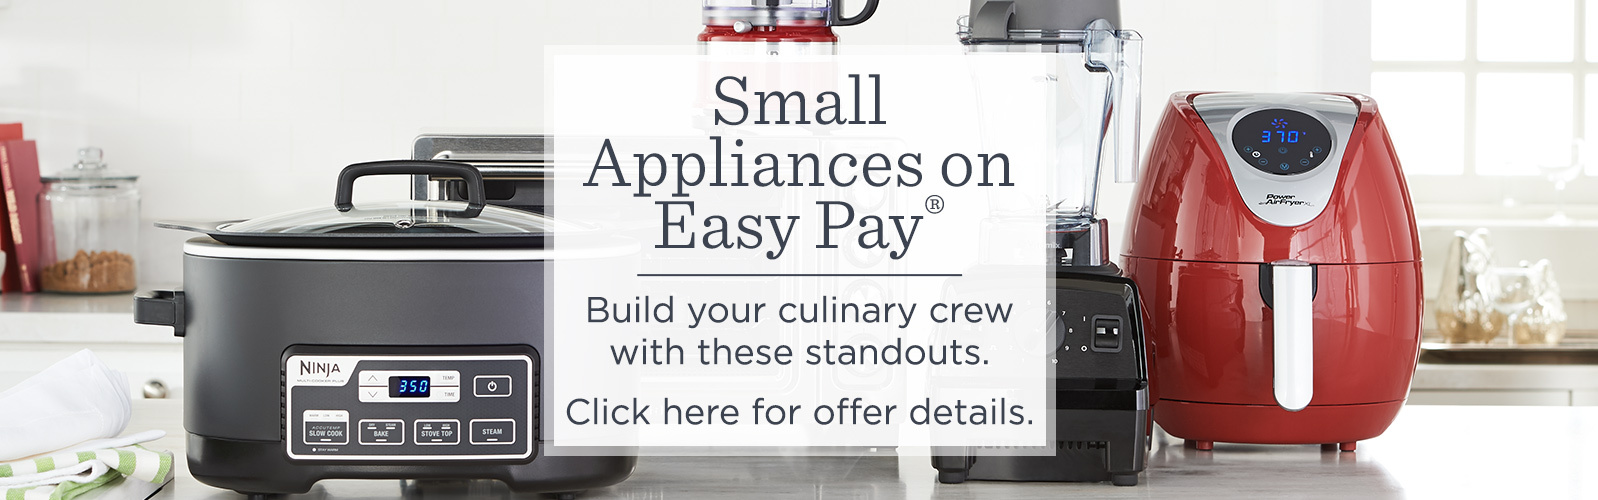 Small Appliances on Easy Pay®  Build your culinary crew with these standouts.  Click here for offer details.